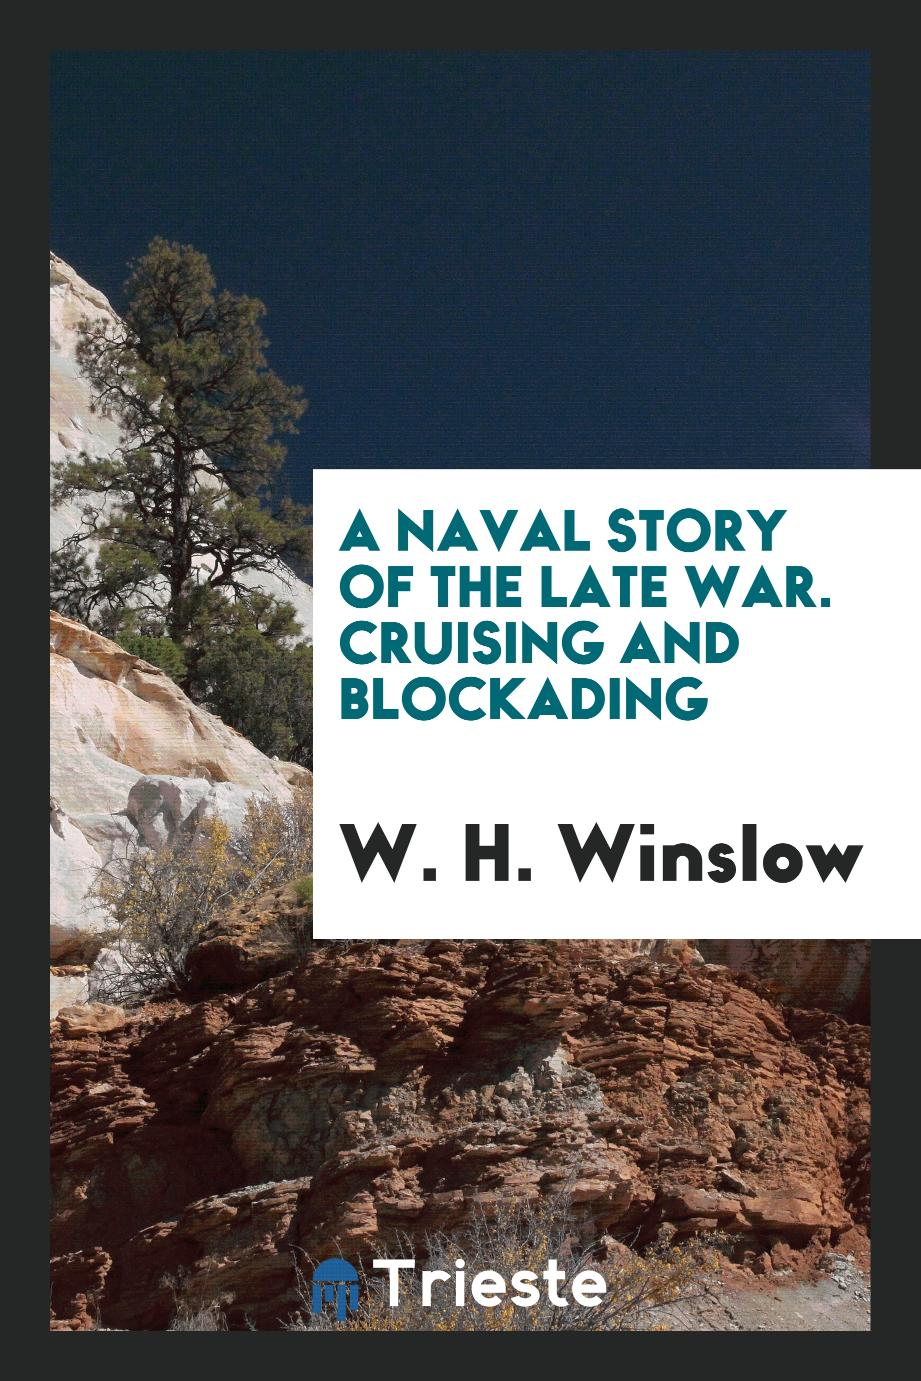 A Naval Story of the Late War. Cruising and Blockading